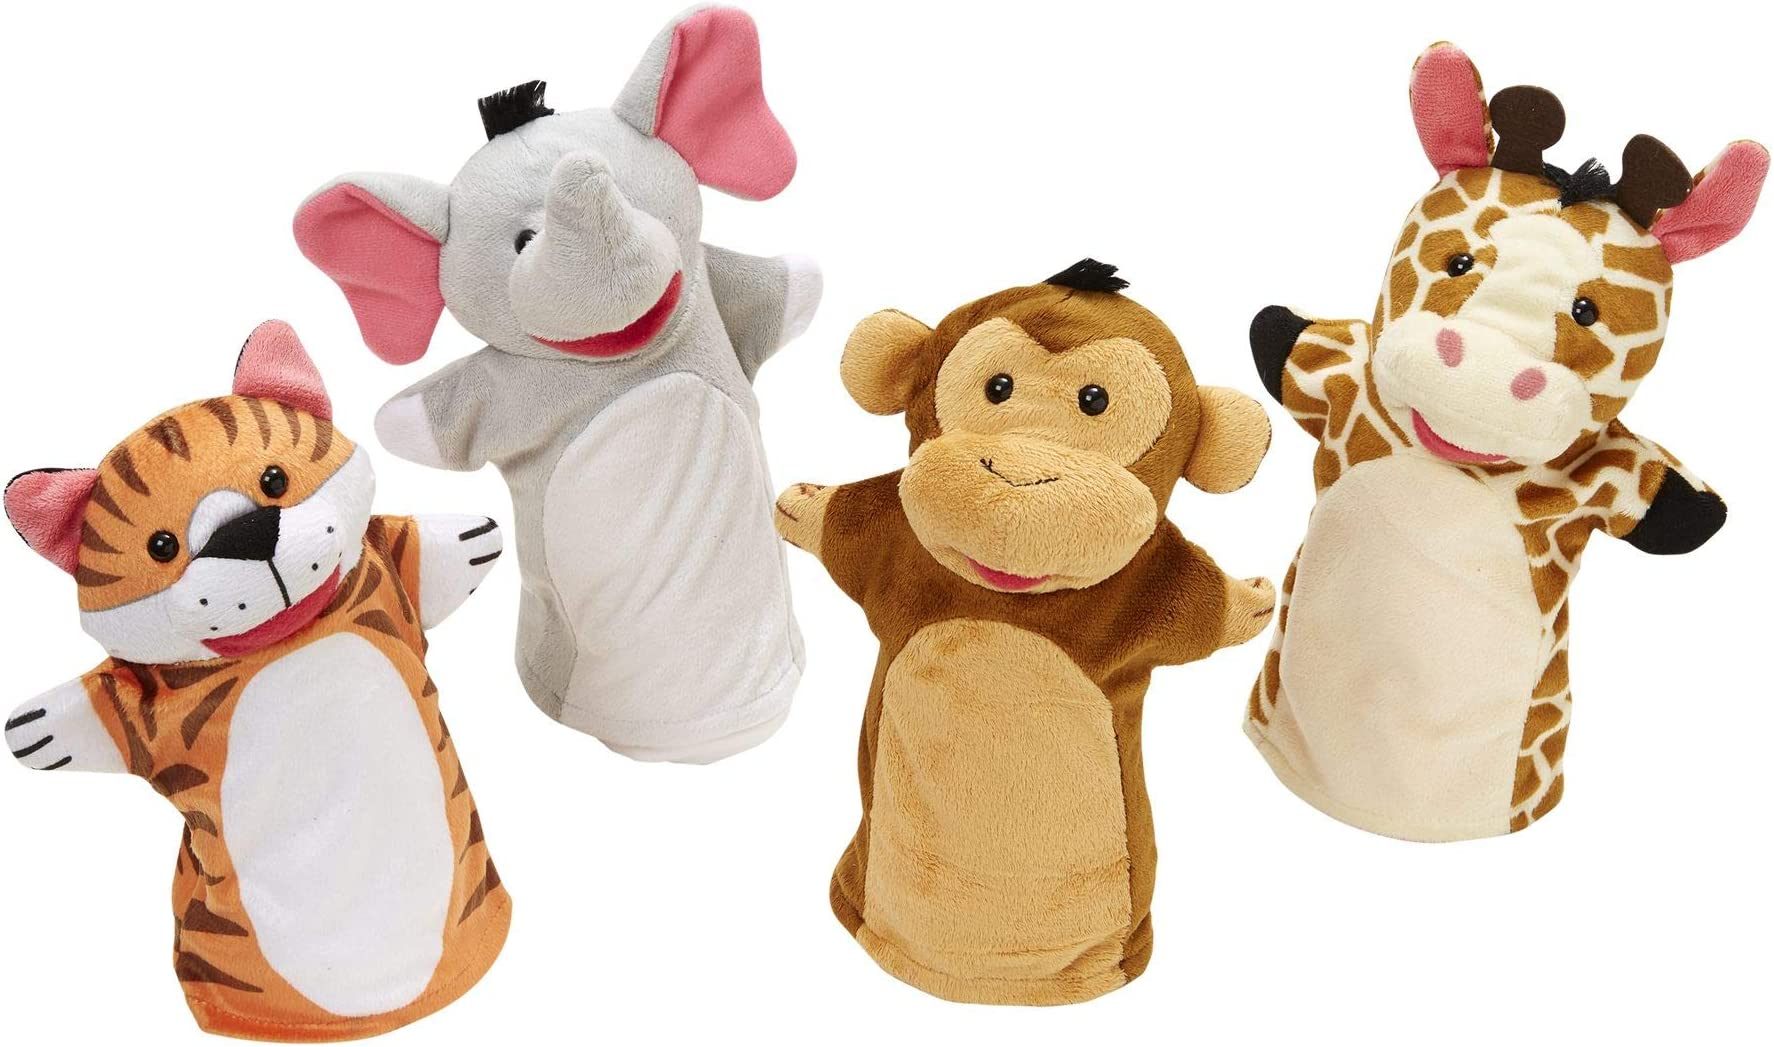 Melissa & Doug Zoo Friends Hand Puppets Puppets and Theaters Themed Puppet Sets 3+ Gift for Boy or Girl